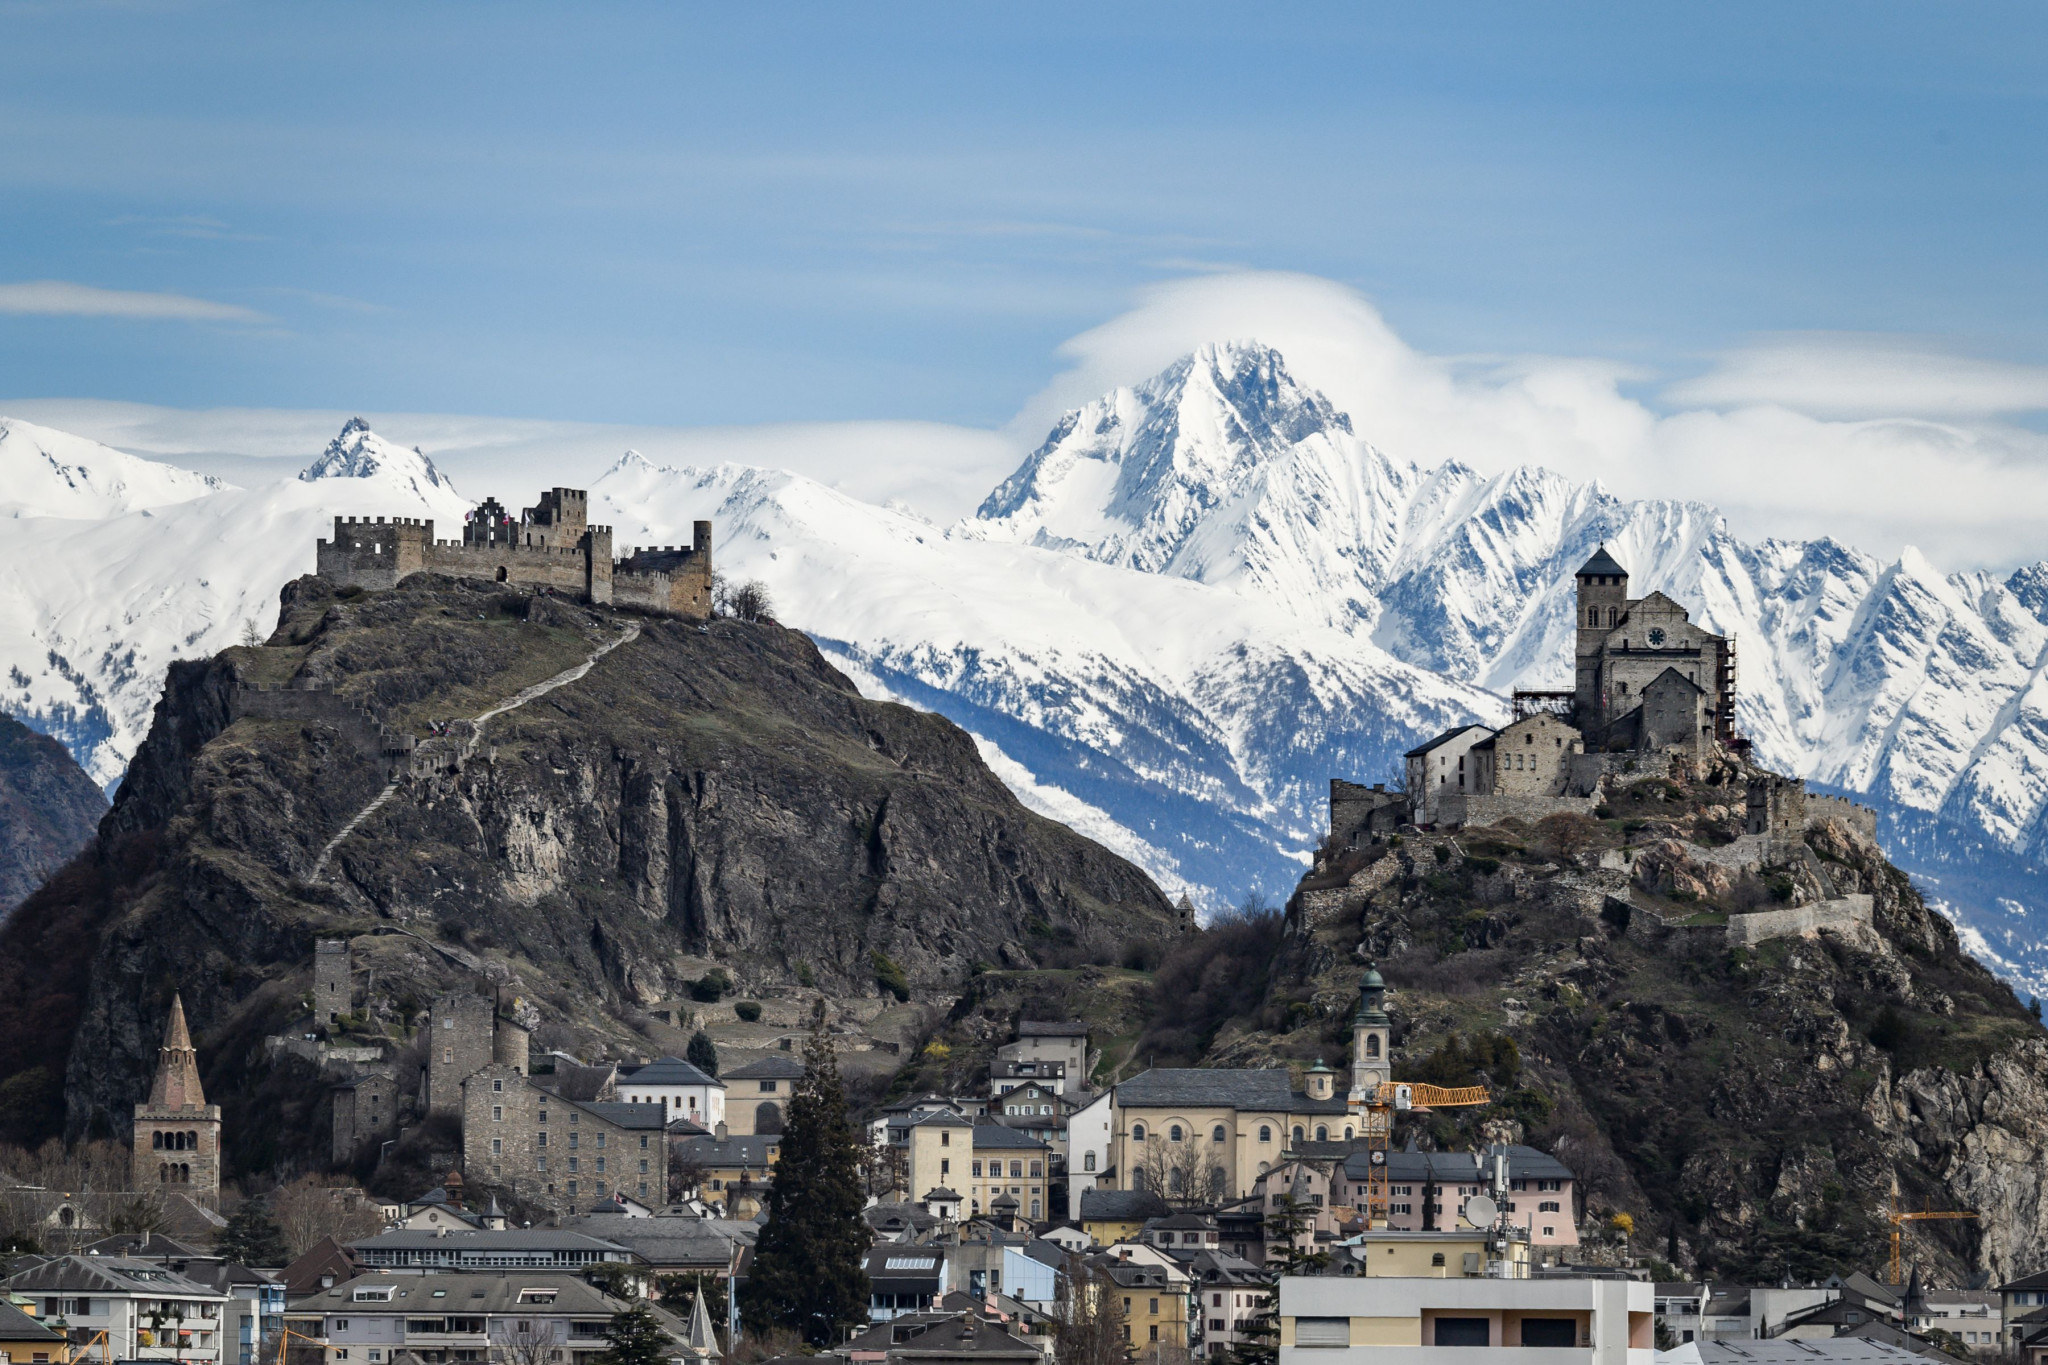 Sion in Switzerland was among the cities to withdraw their bid for the 2026 Games after losing a referendum ©Getty Images